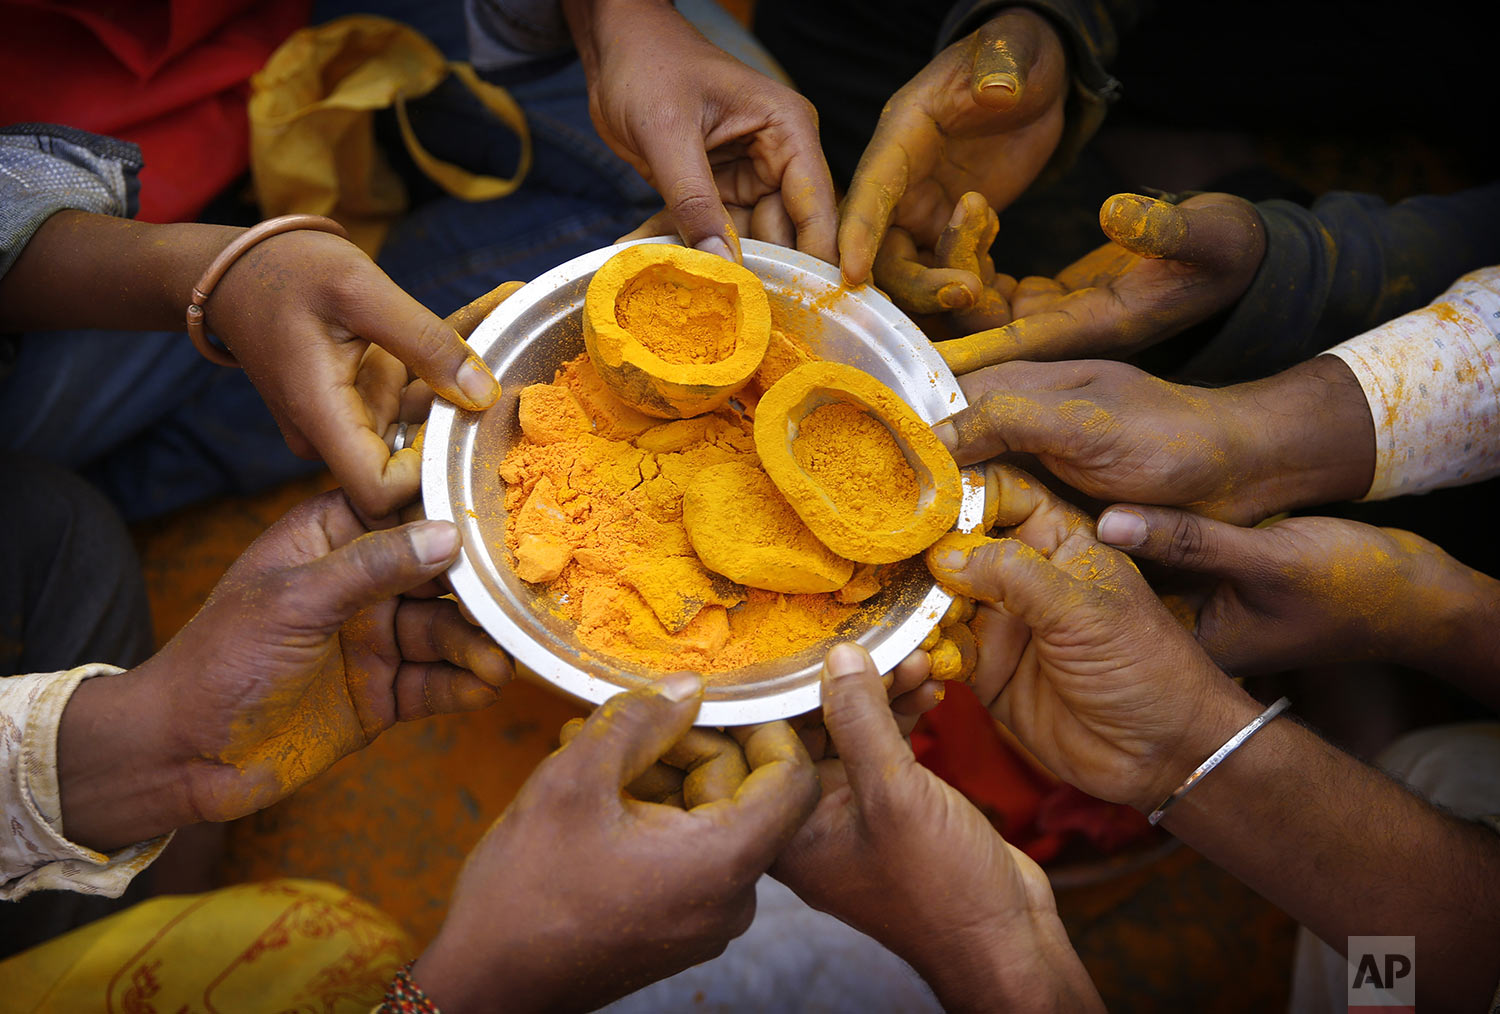 Devotees hold a plate with turmeric as they offer prayers during the celebration of the Bhandara Festival, or the Festival of Turmeric, at the Jejuri temple in Pune district, Maharashtra state, India, Monday, June 3, 2019. (AP Photo/Rafiq Maqbool)